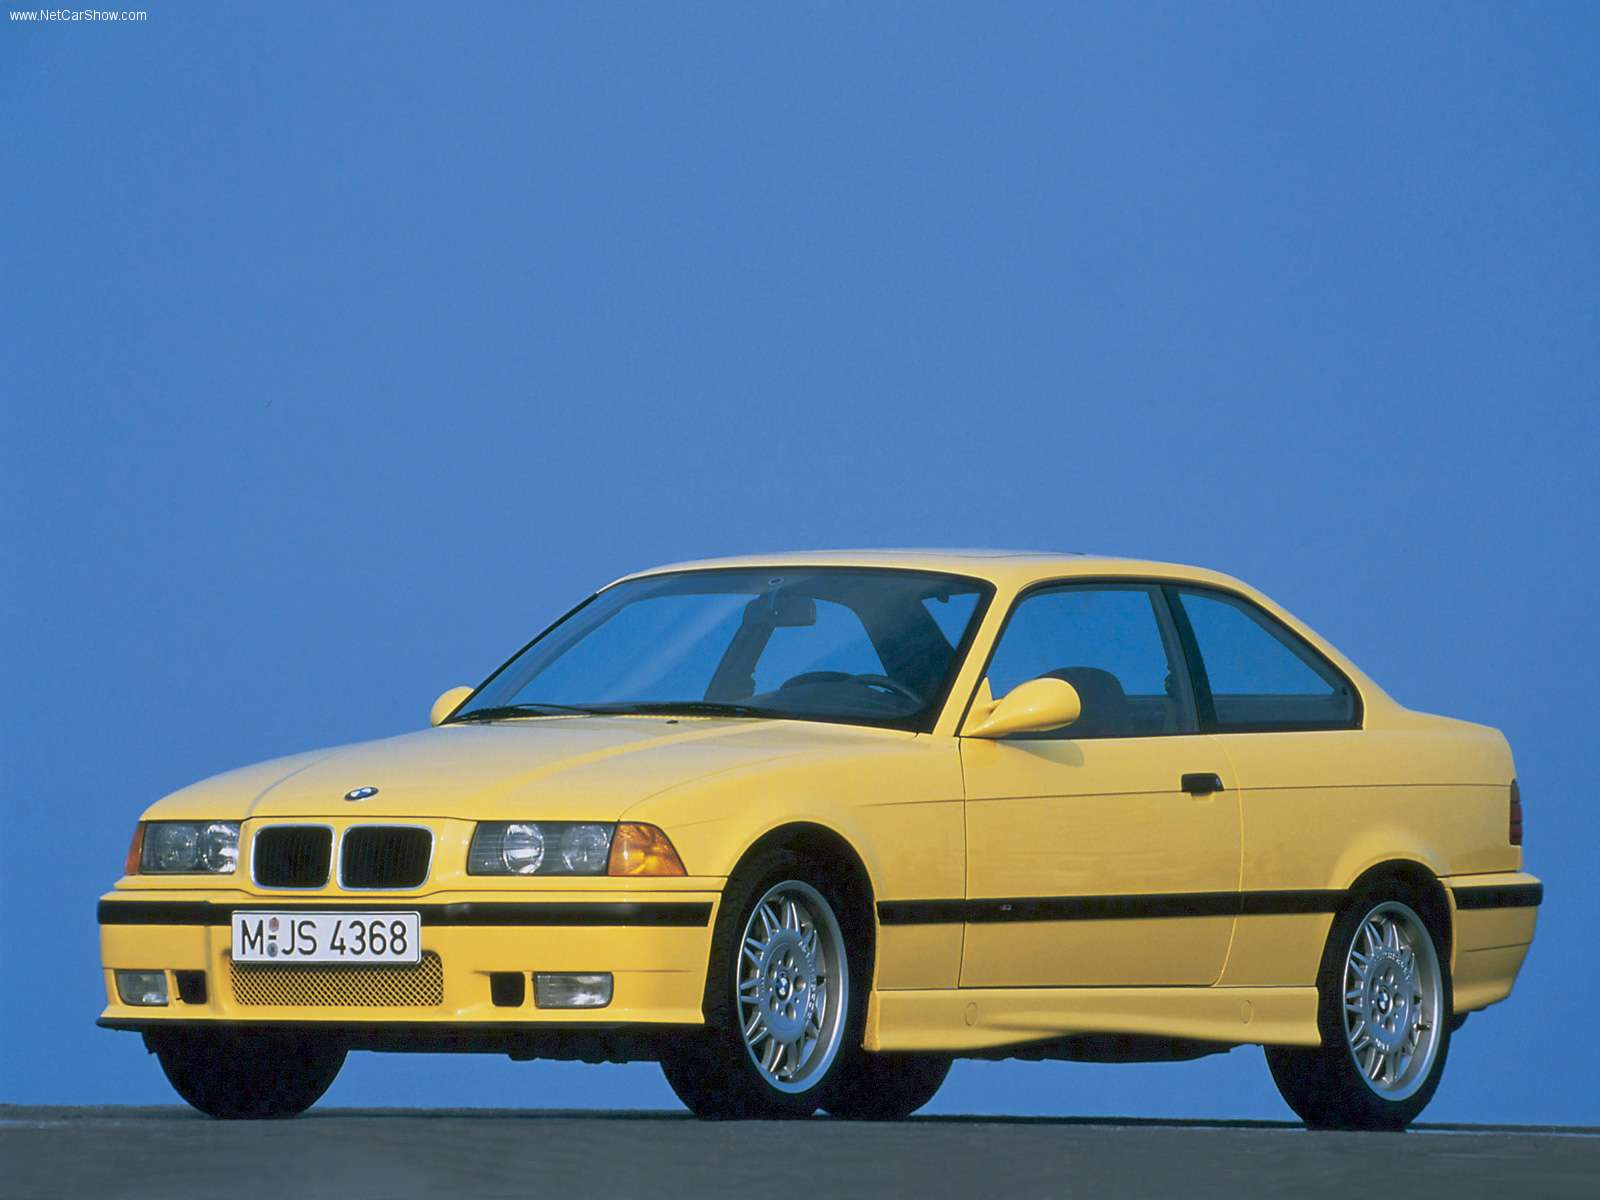 My Perfect Bmw M3 3dtuning Probably The Best Car Configurator E36 Smg Wiring Diagram Coupe 1992